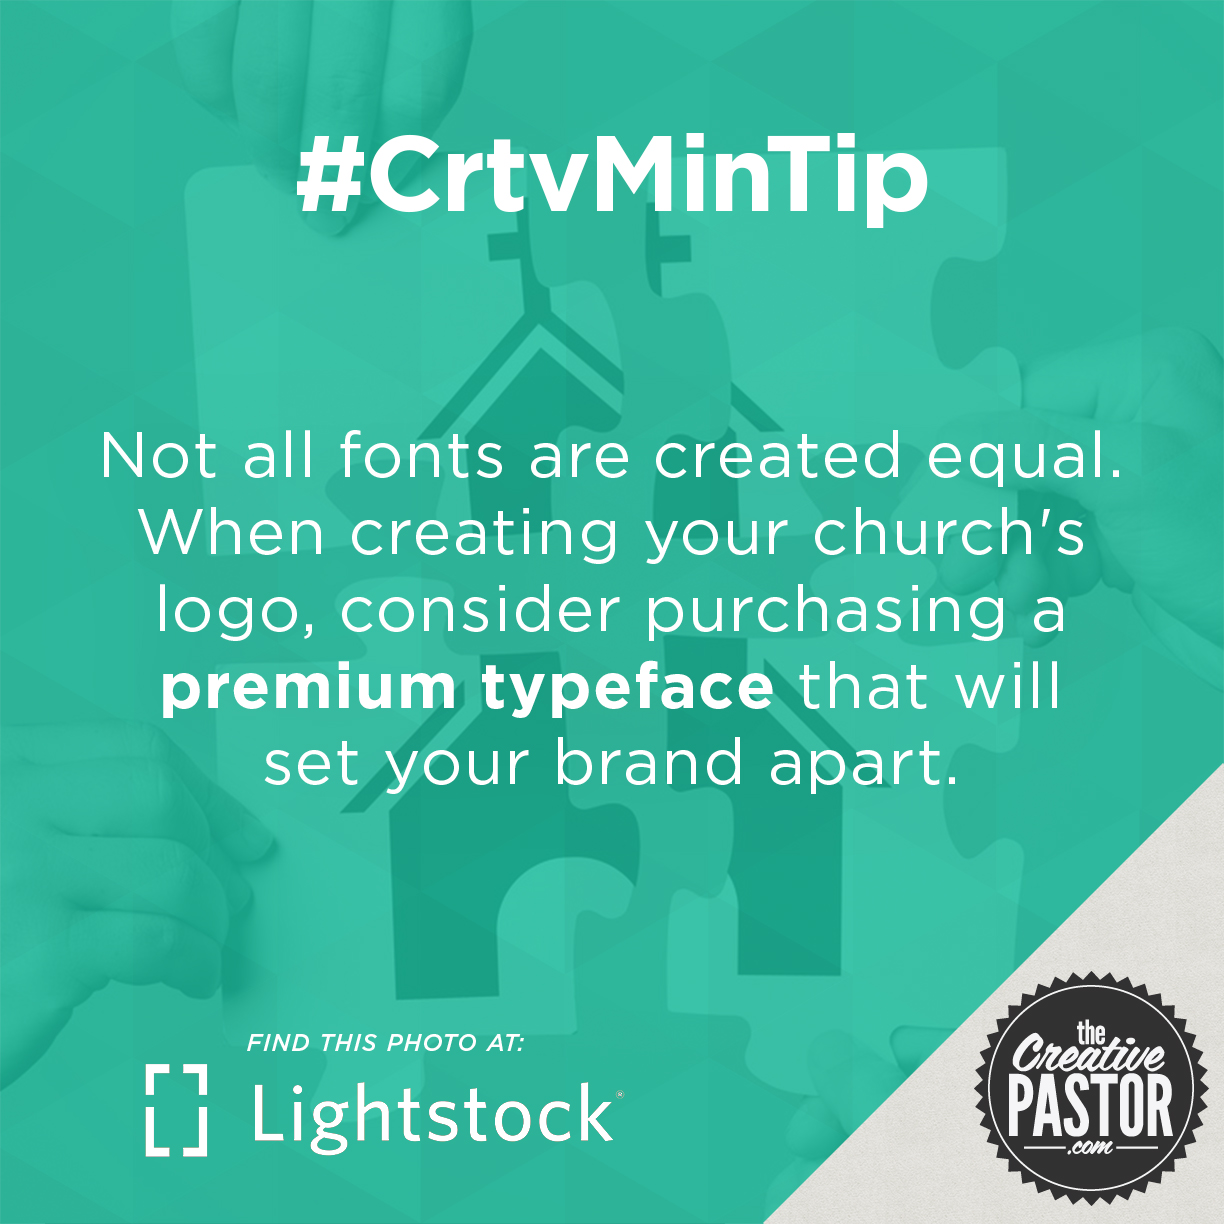 Not all fonts are created equal. When creating your church's logo, consider purchasing a premium typeface that will set your brand apart.